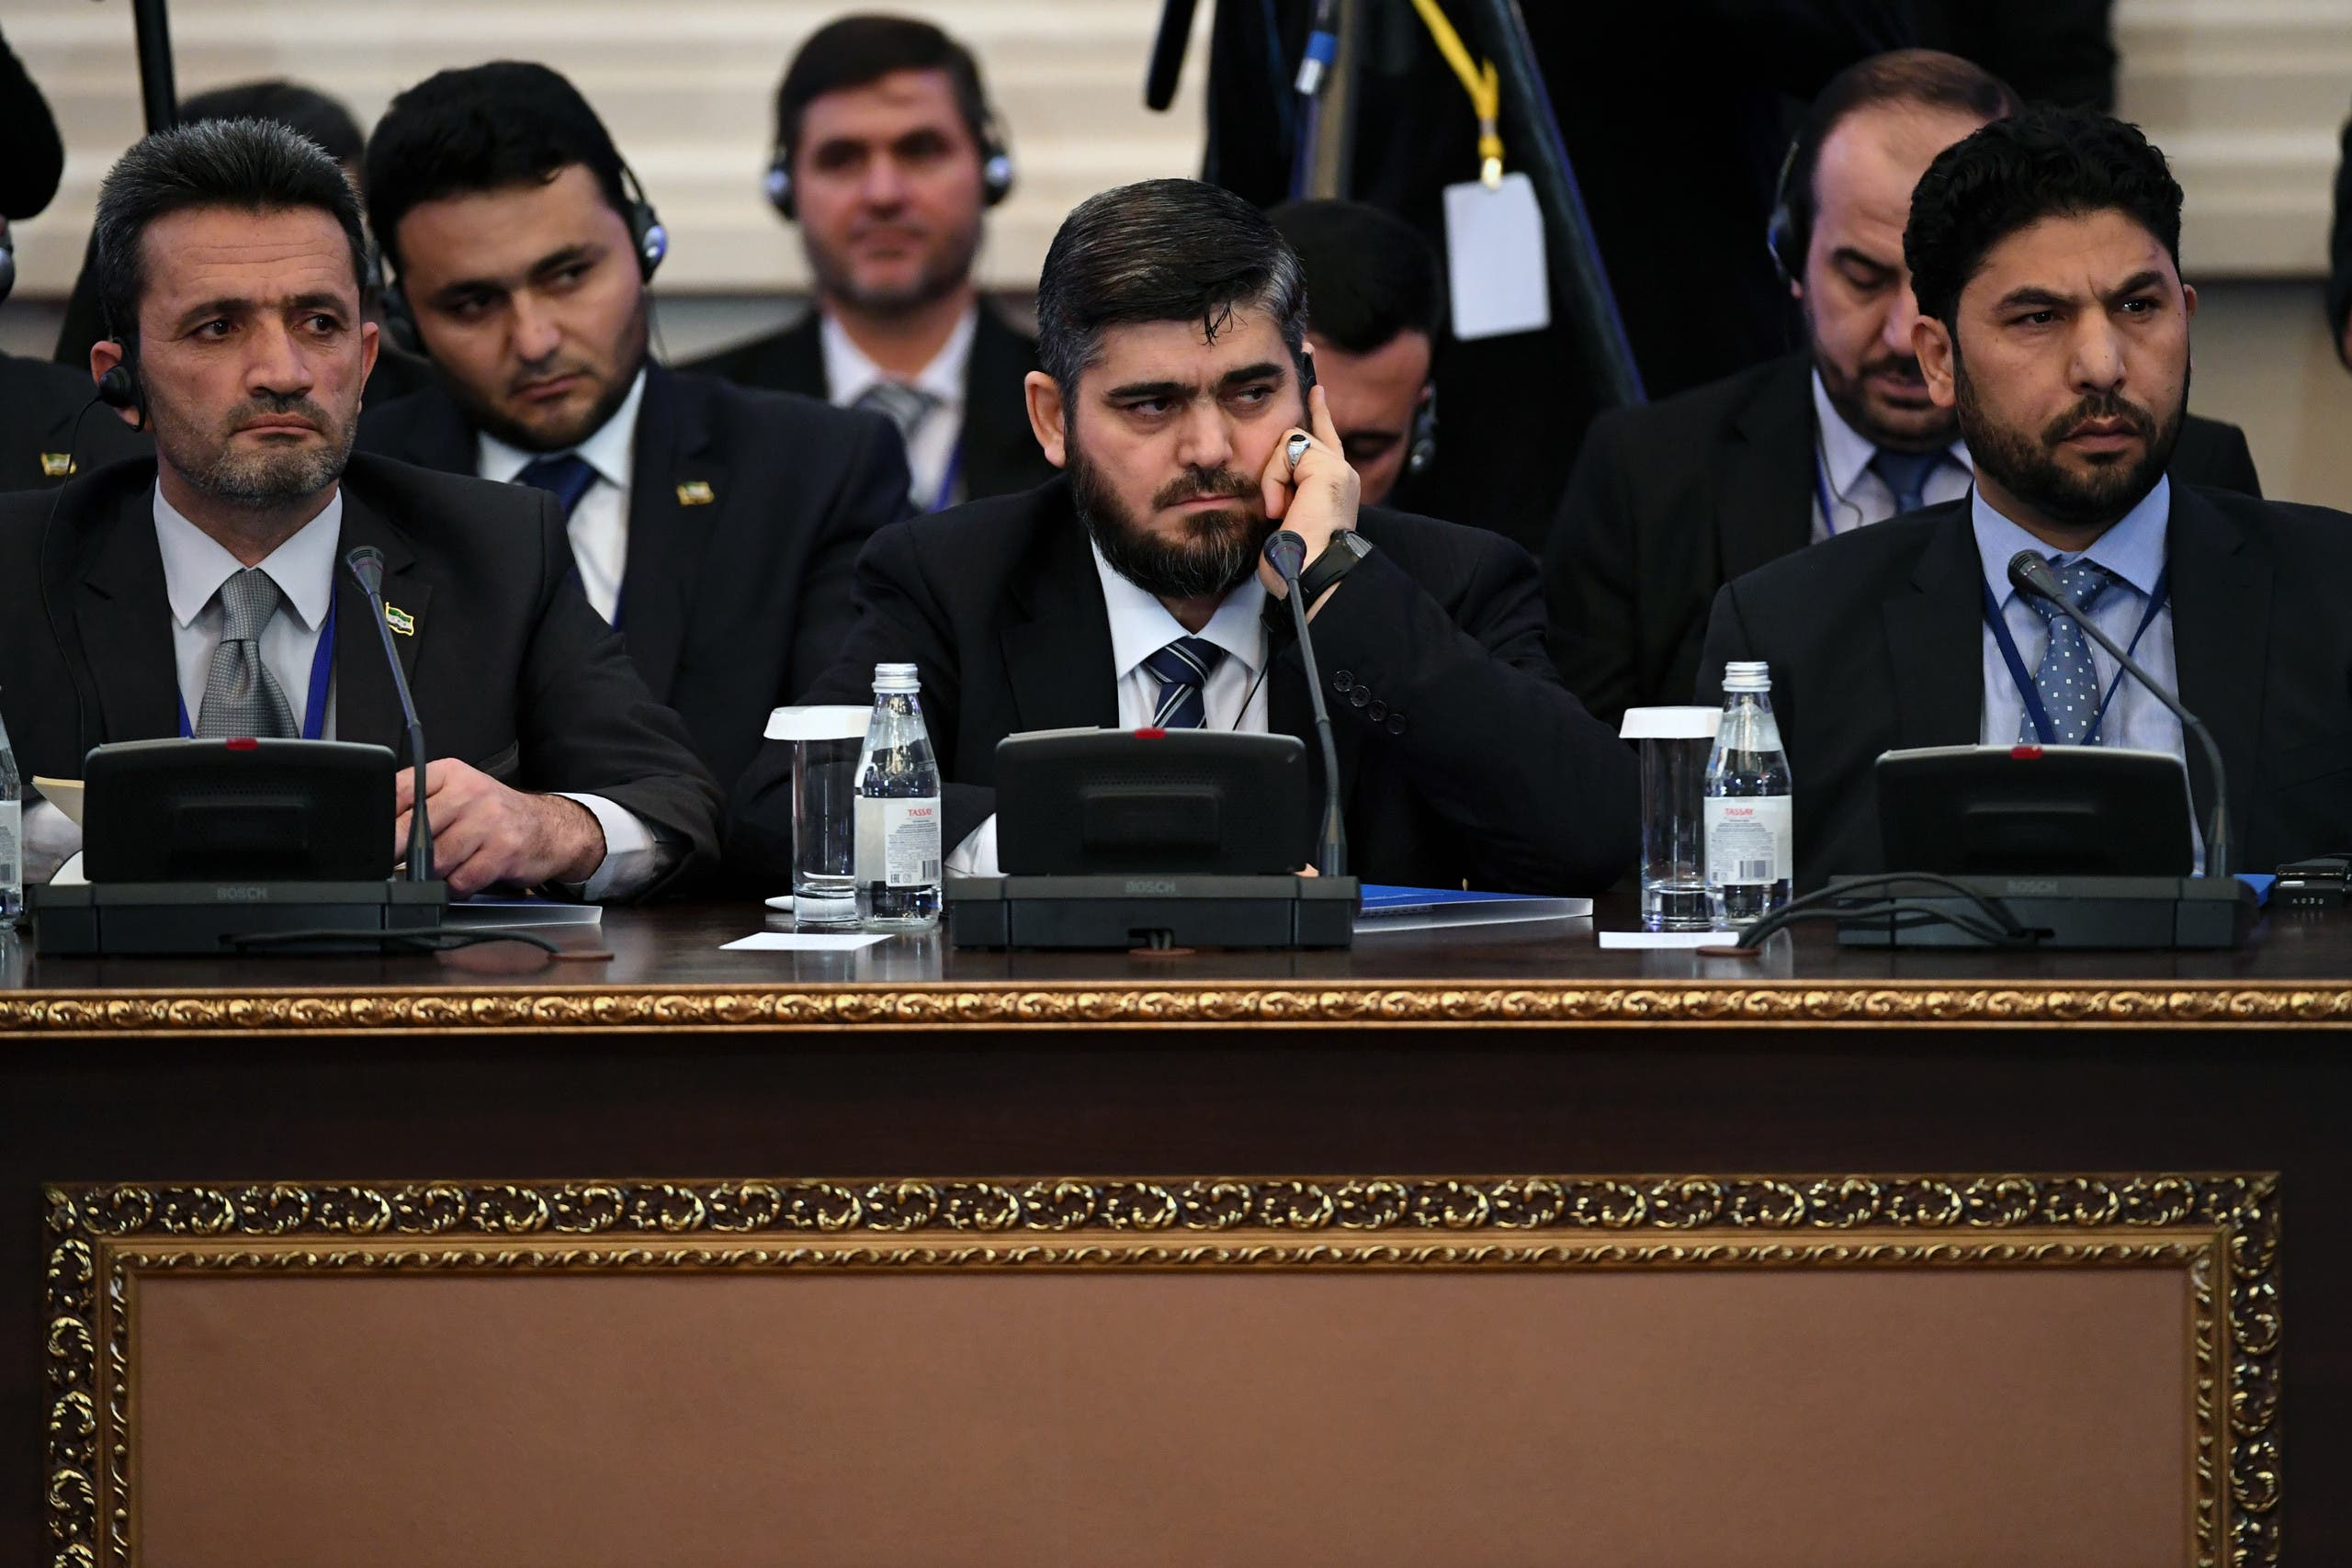 Chief opposition negotiator Mohammad Alloush (C) of the Jaish al-Islam (Army of Islam) rebel group attends the first session of Syria peace talks at Astana's Rixos President Hotel on January 23, 2017.  afp